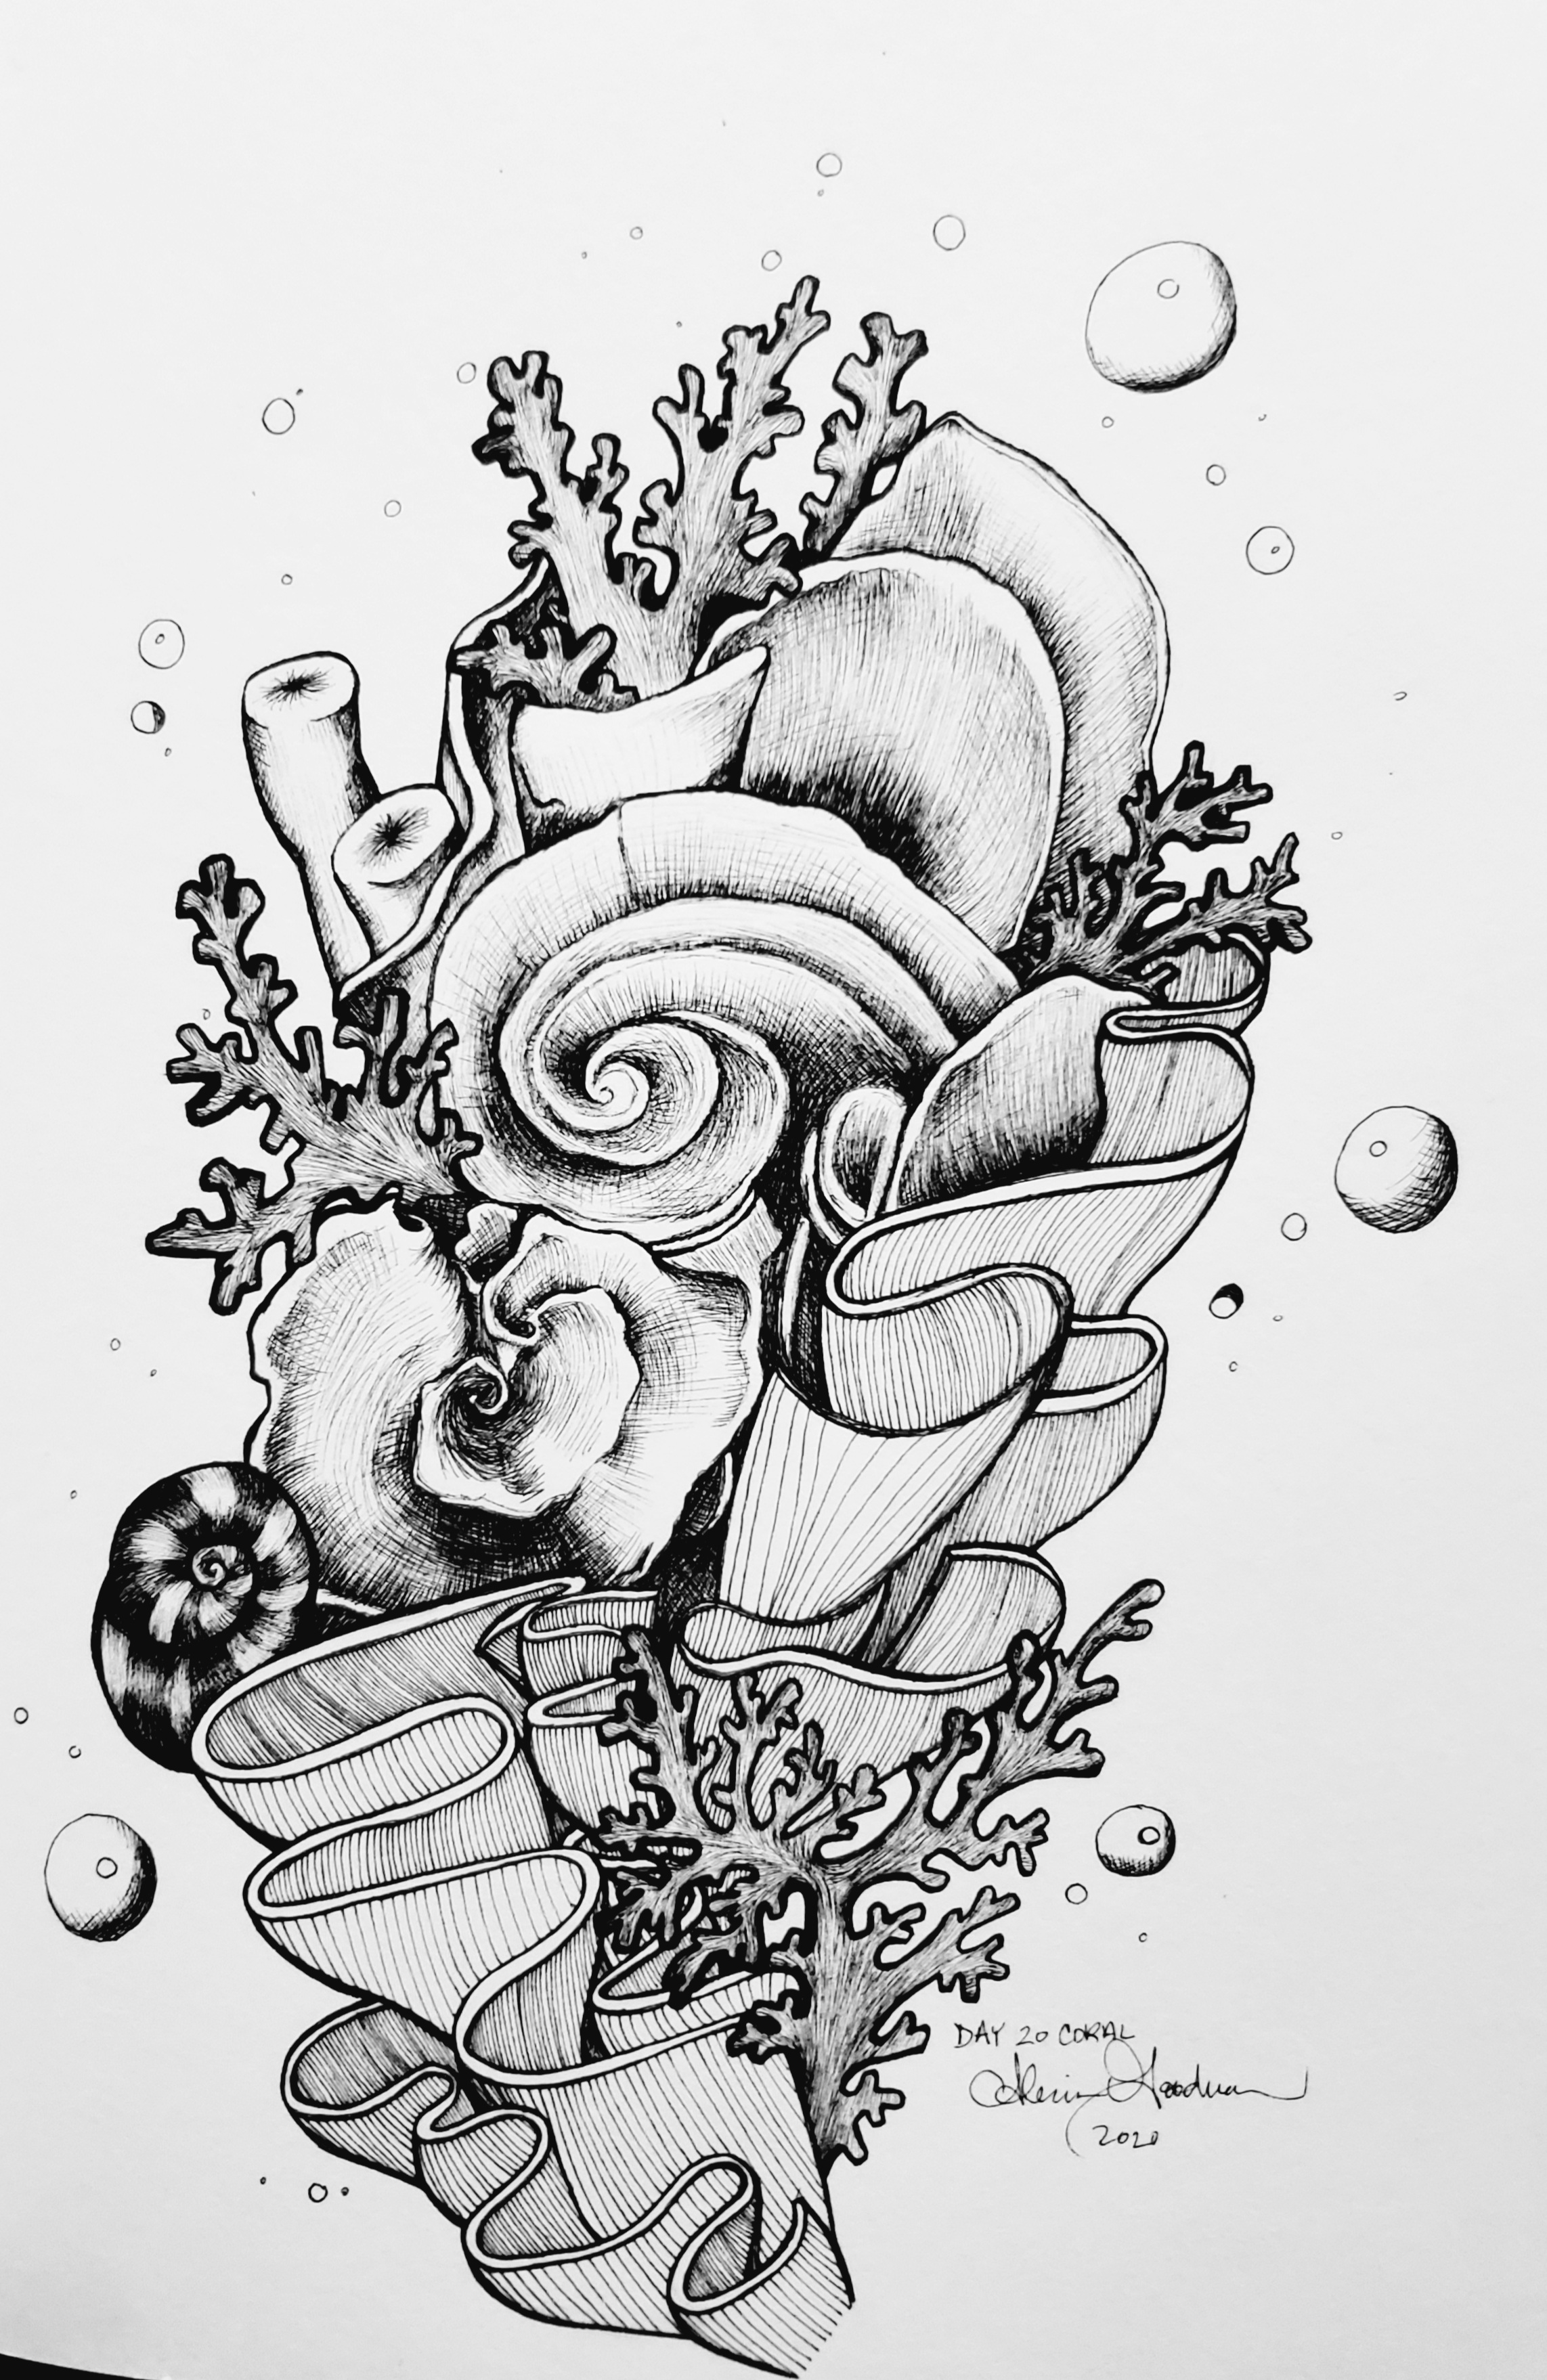 Inktober Day 20 Coral ink drawing with bubbles alecia goodman 2020 to present